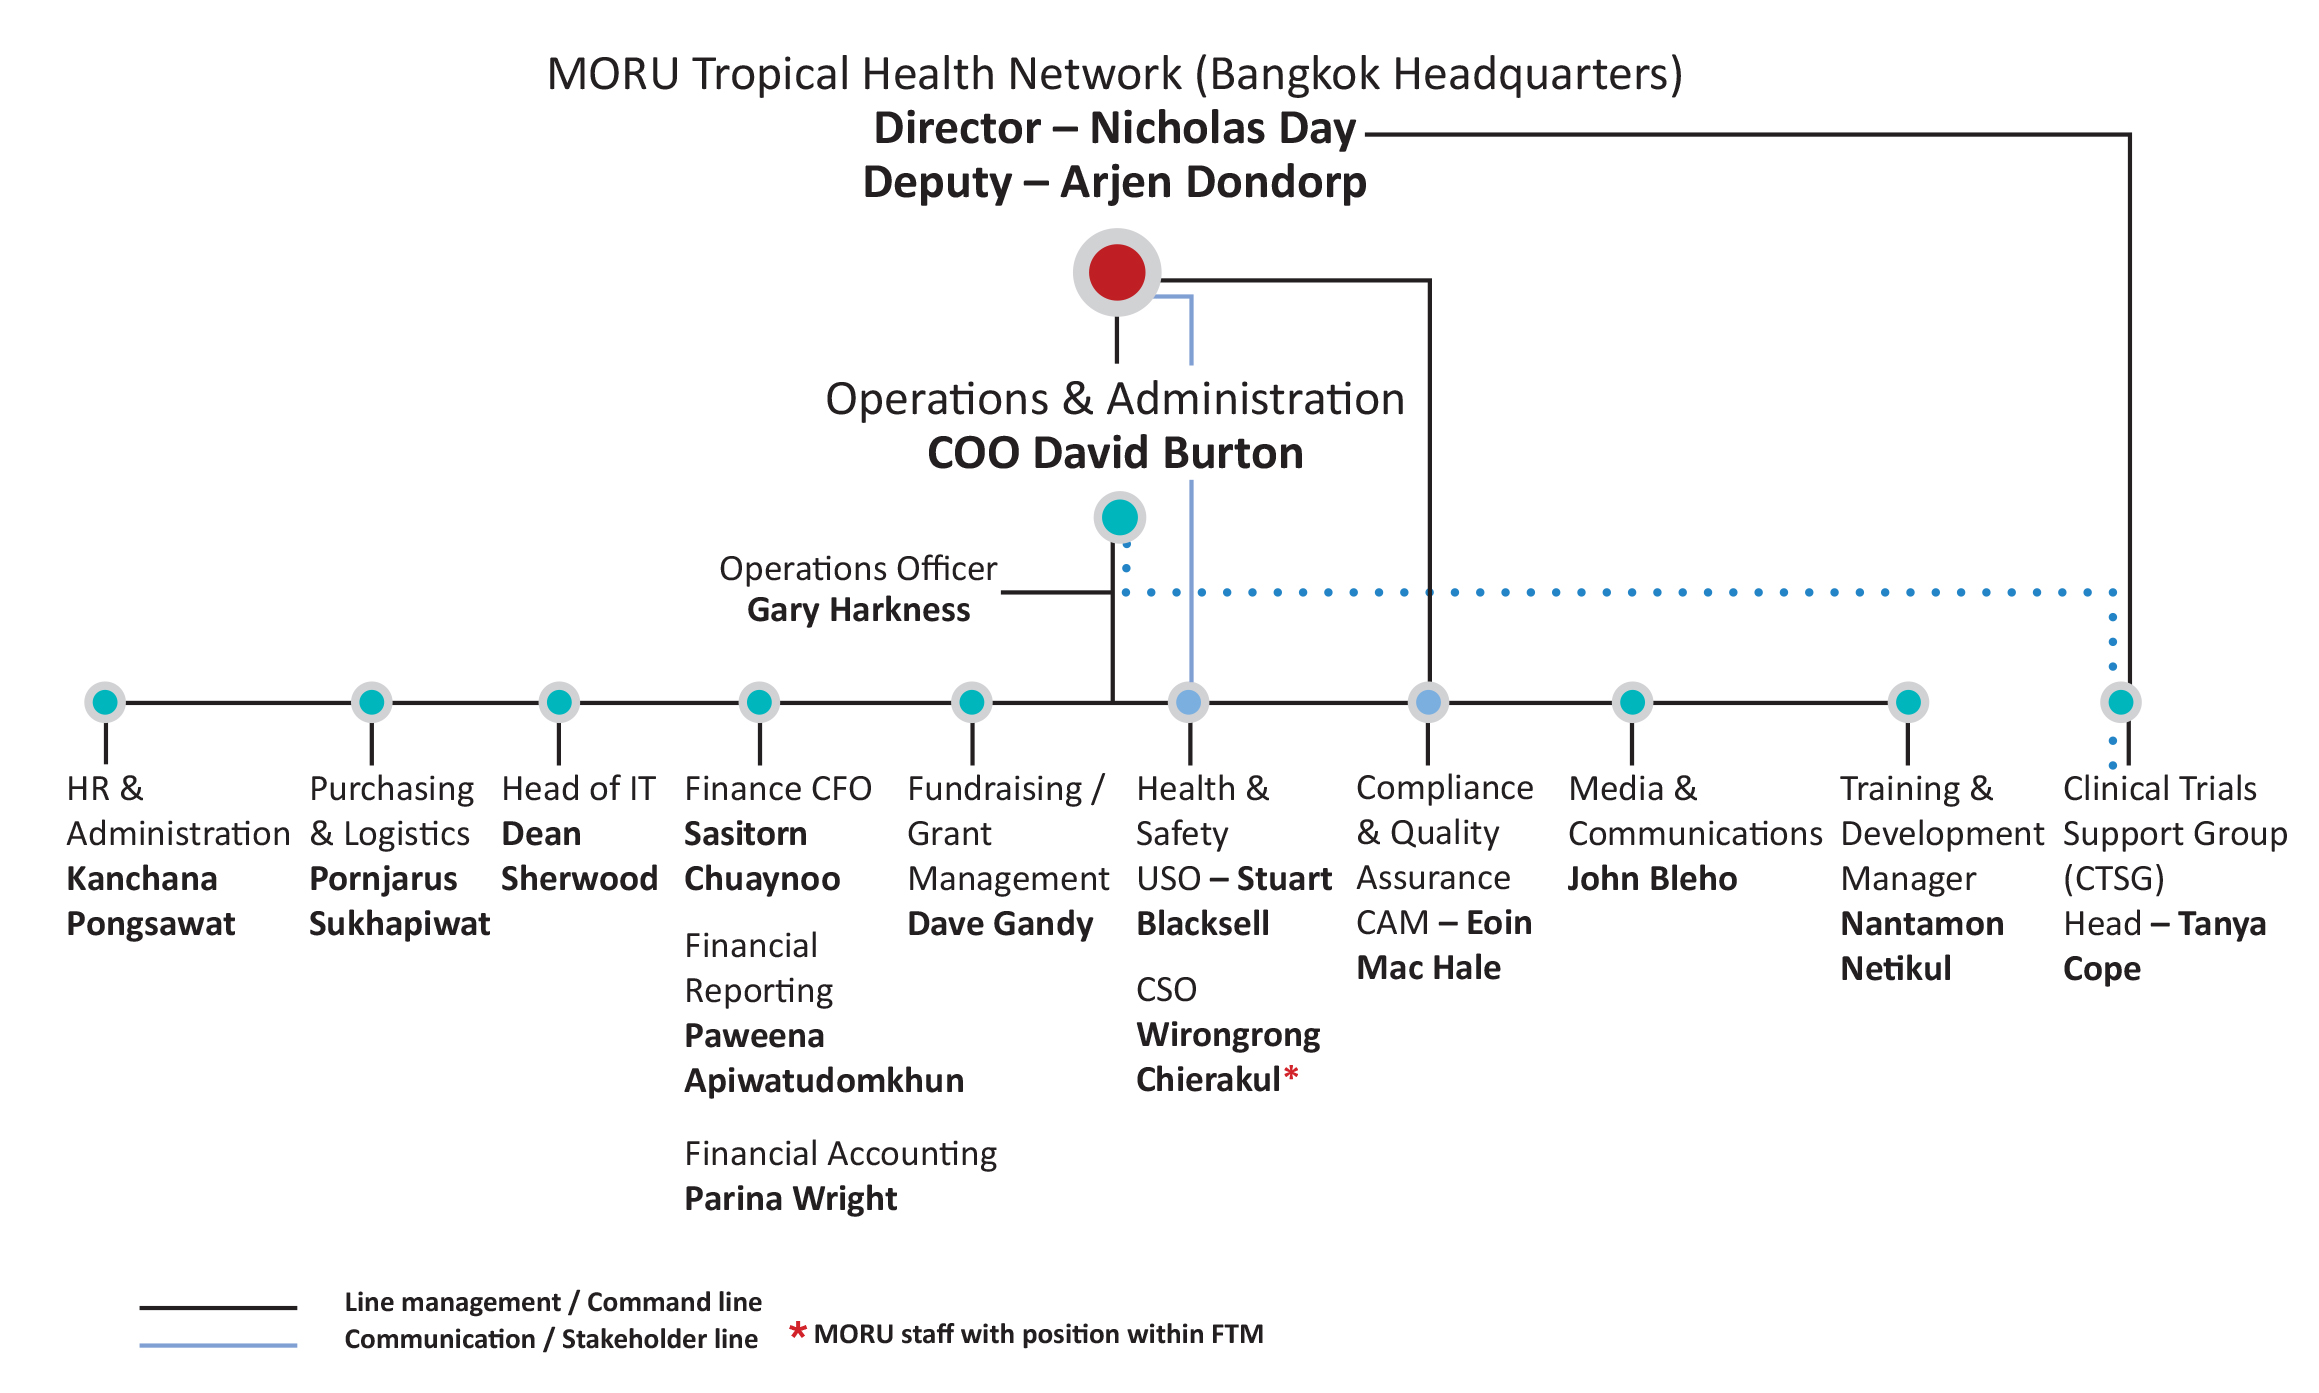 https://www.tropmedres.ac/units/moru-bangkok/operations-administration/our-team/operations-administration-organisation-chart